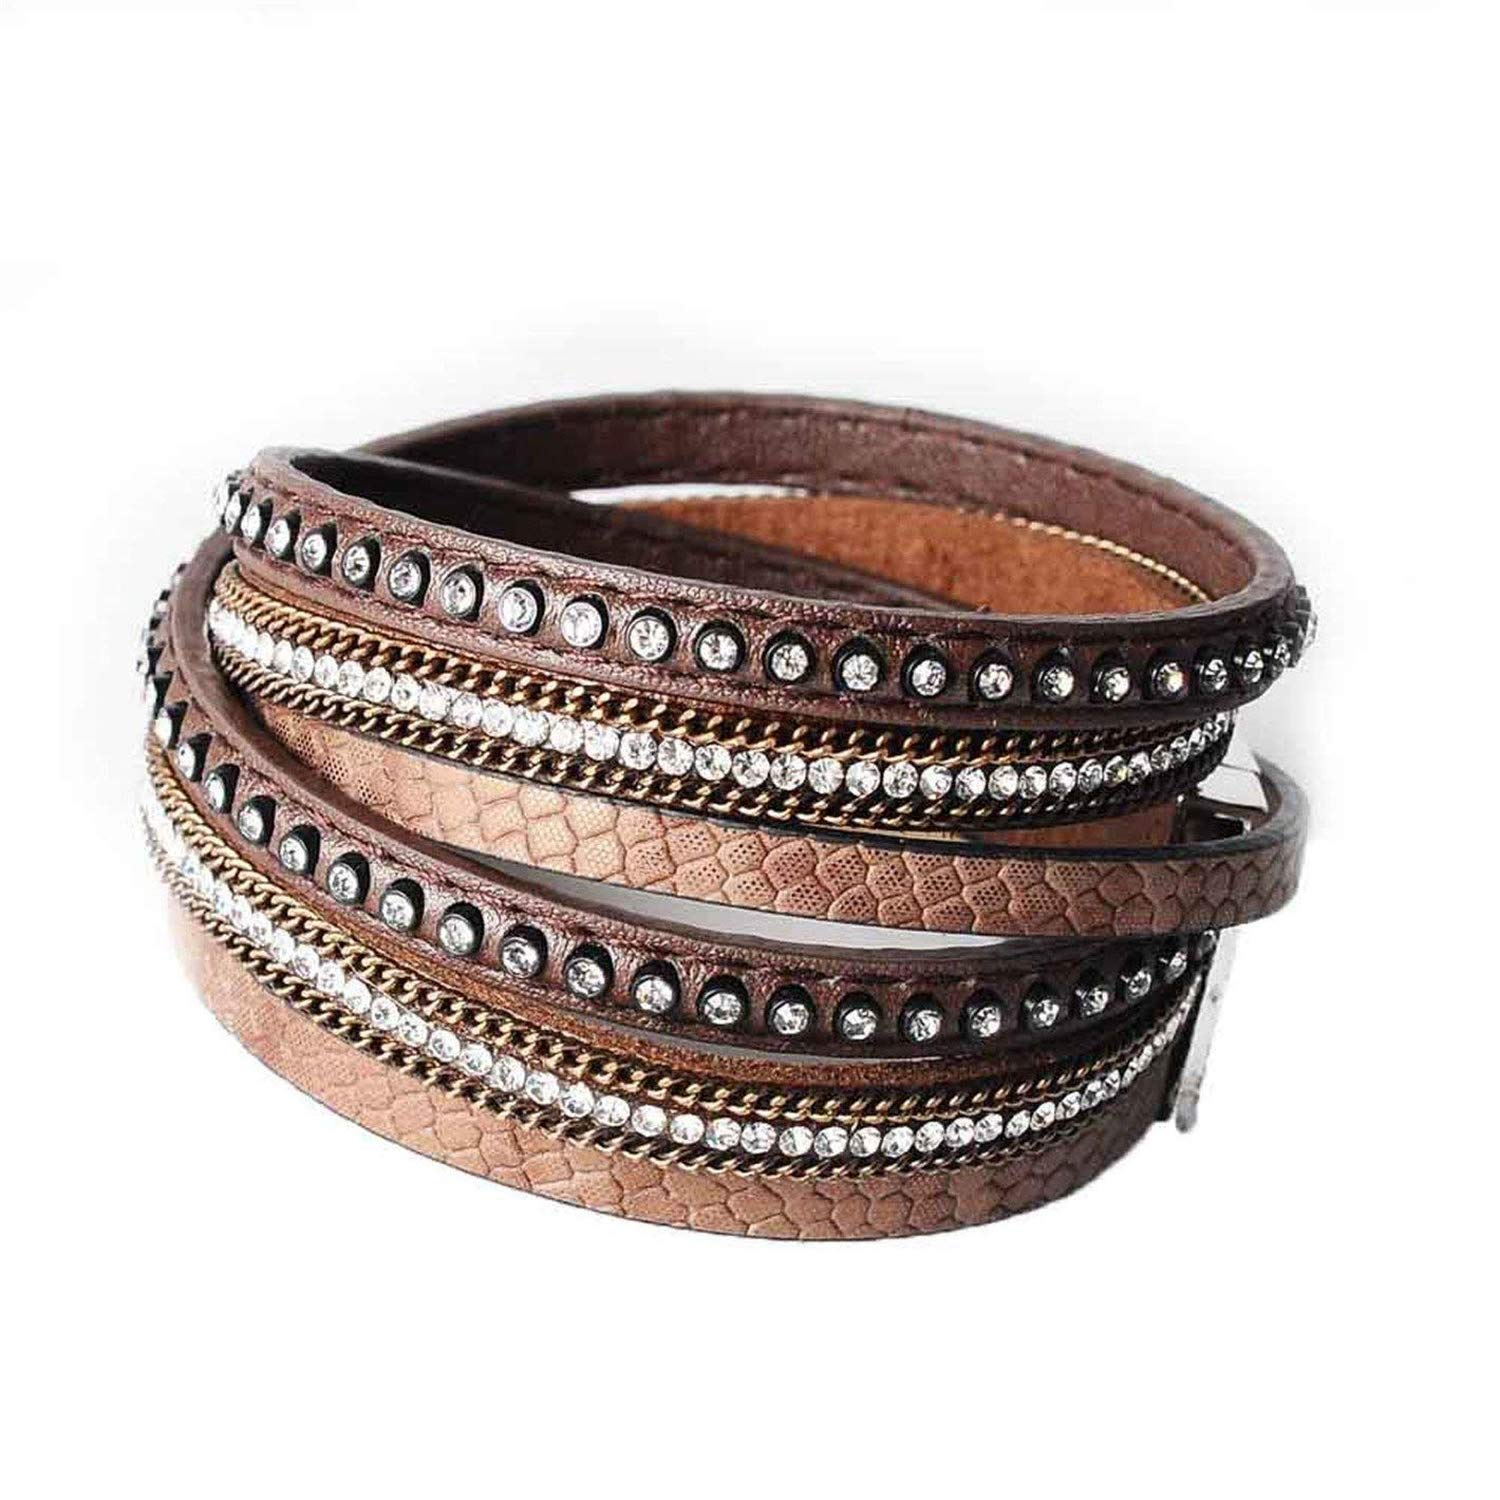 wrap Leather Bangle Charm Winter Leather Bracelet Women Jewelry BW Dropshipping,Brown by Mannerg bracelets (Image #1)